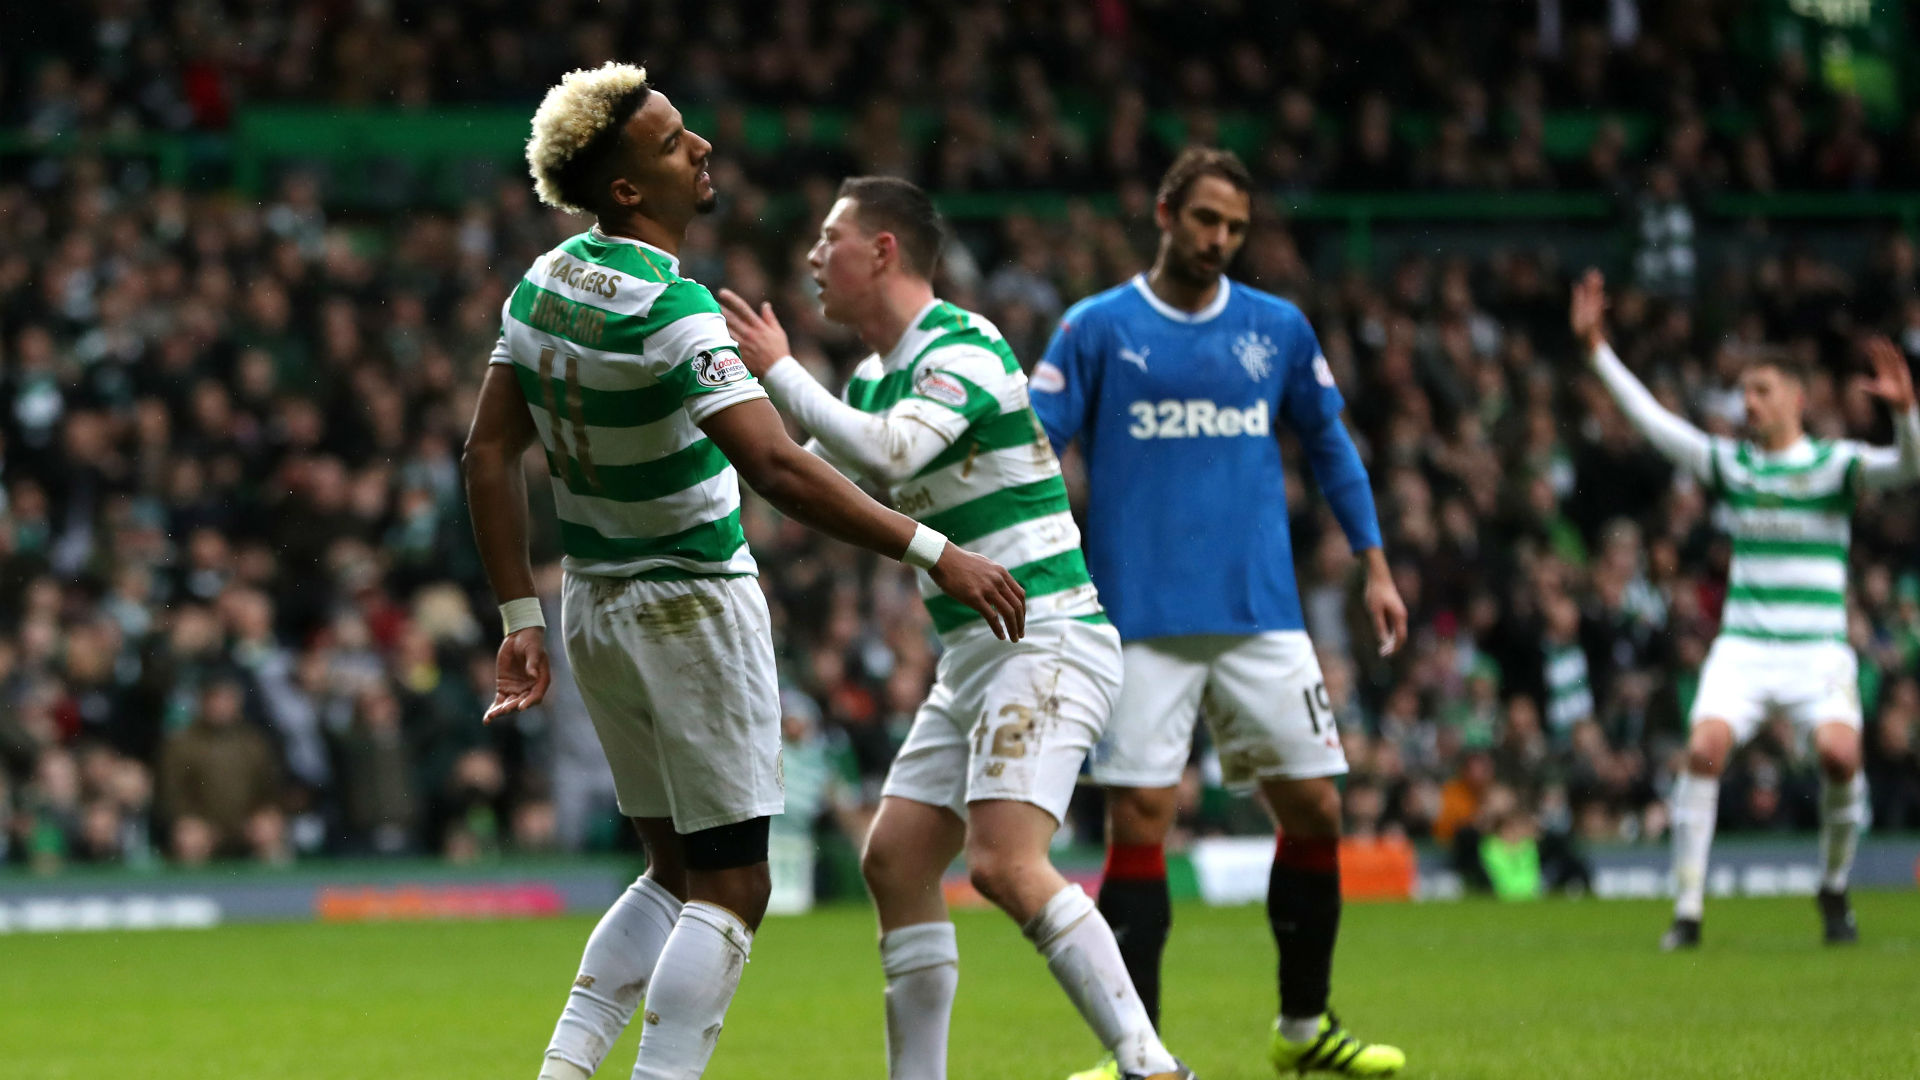 Old Firm: Rangers look for first win in last 11 derbies